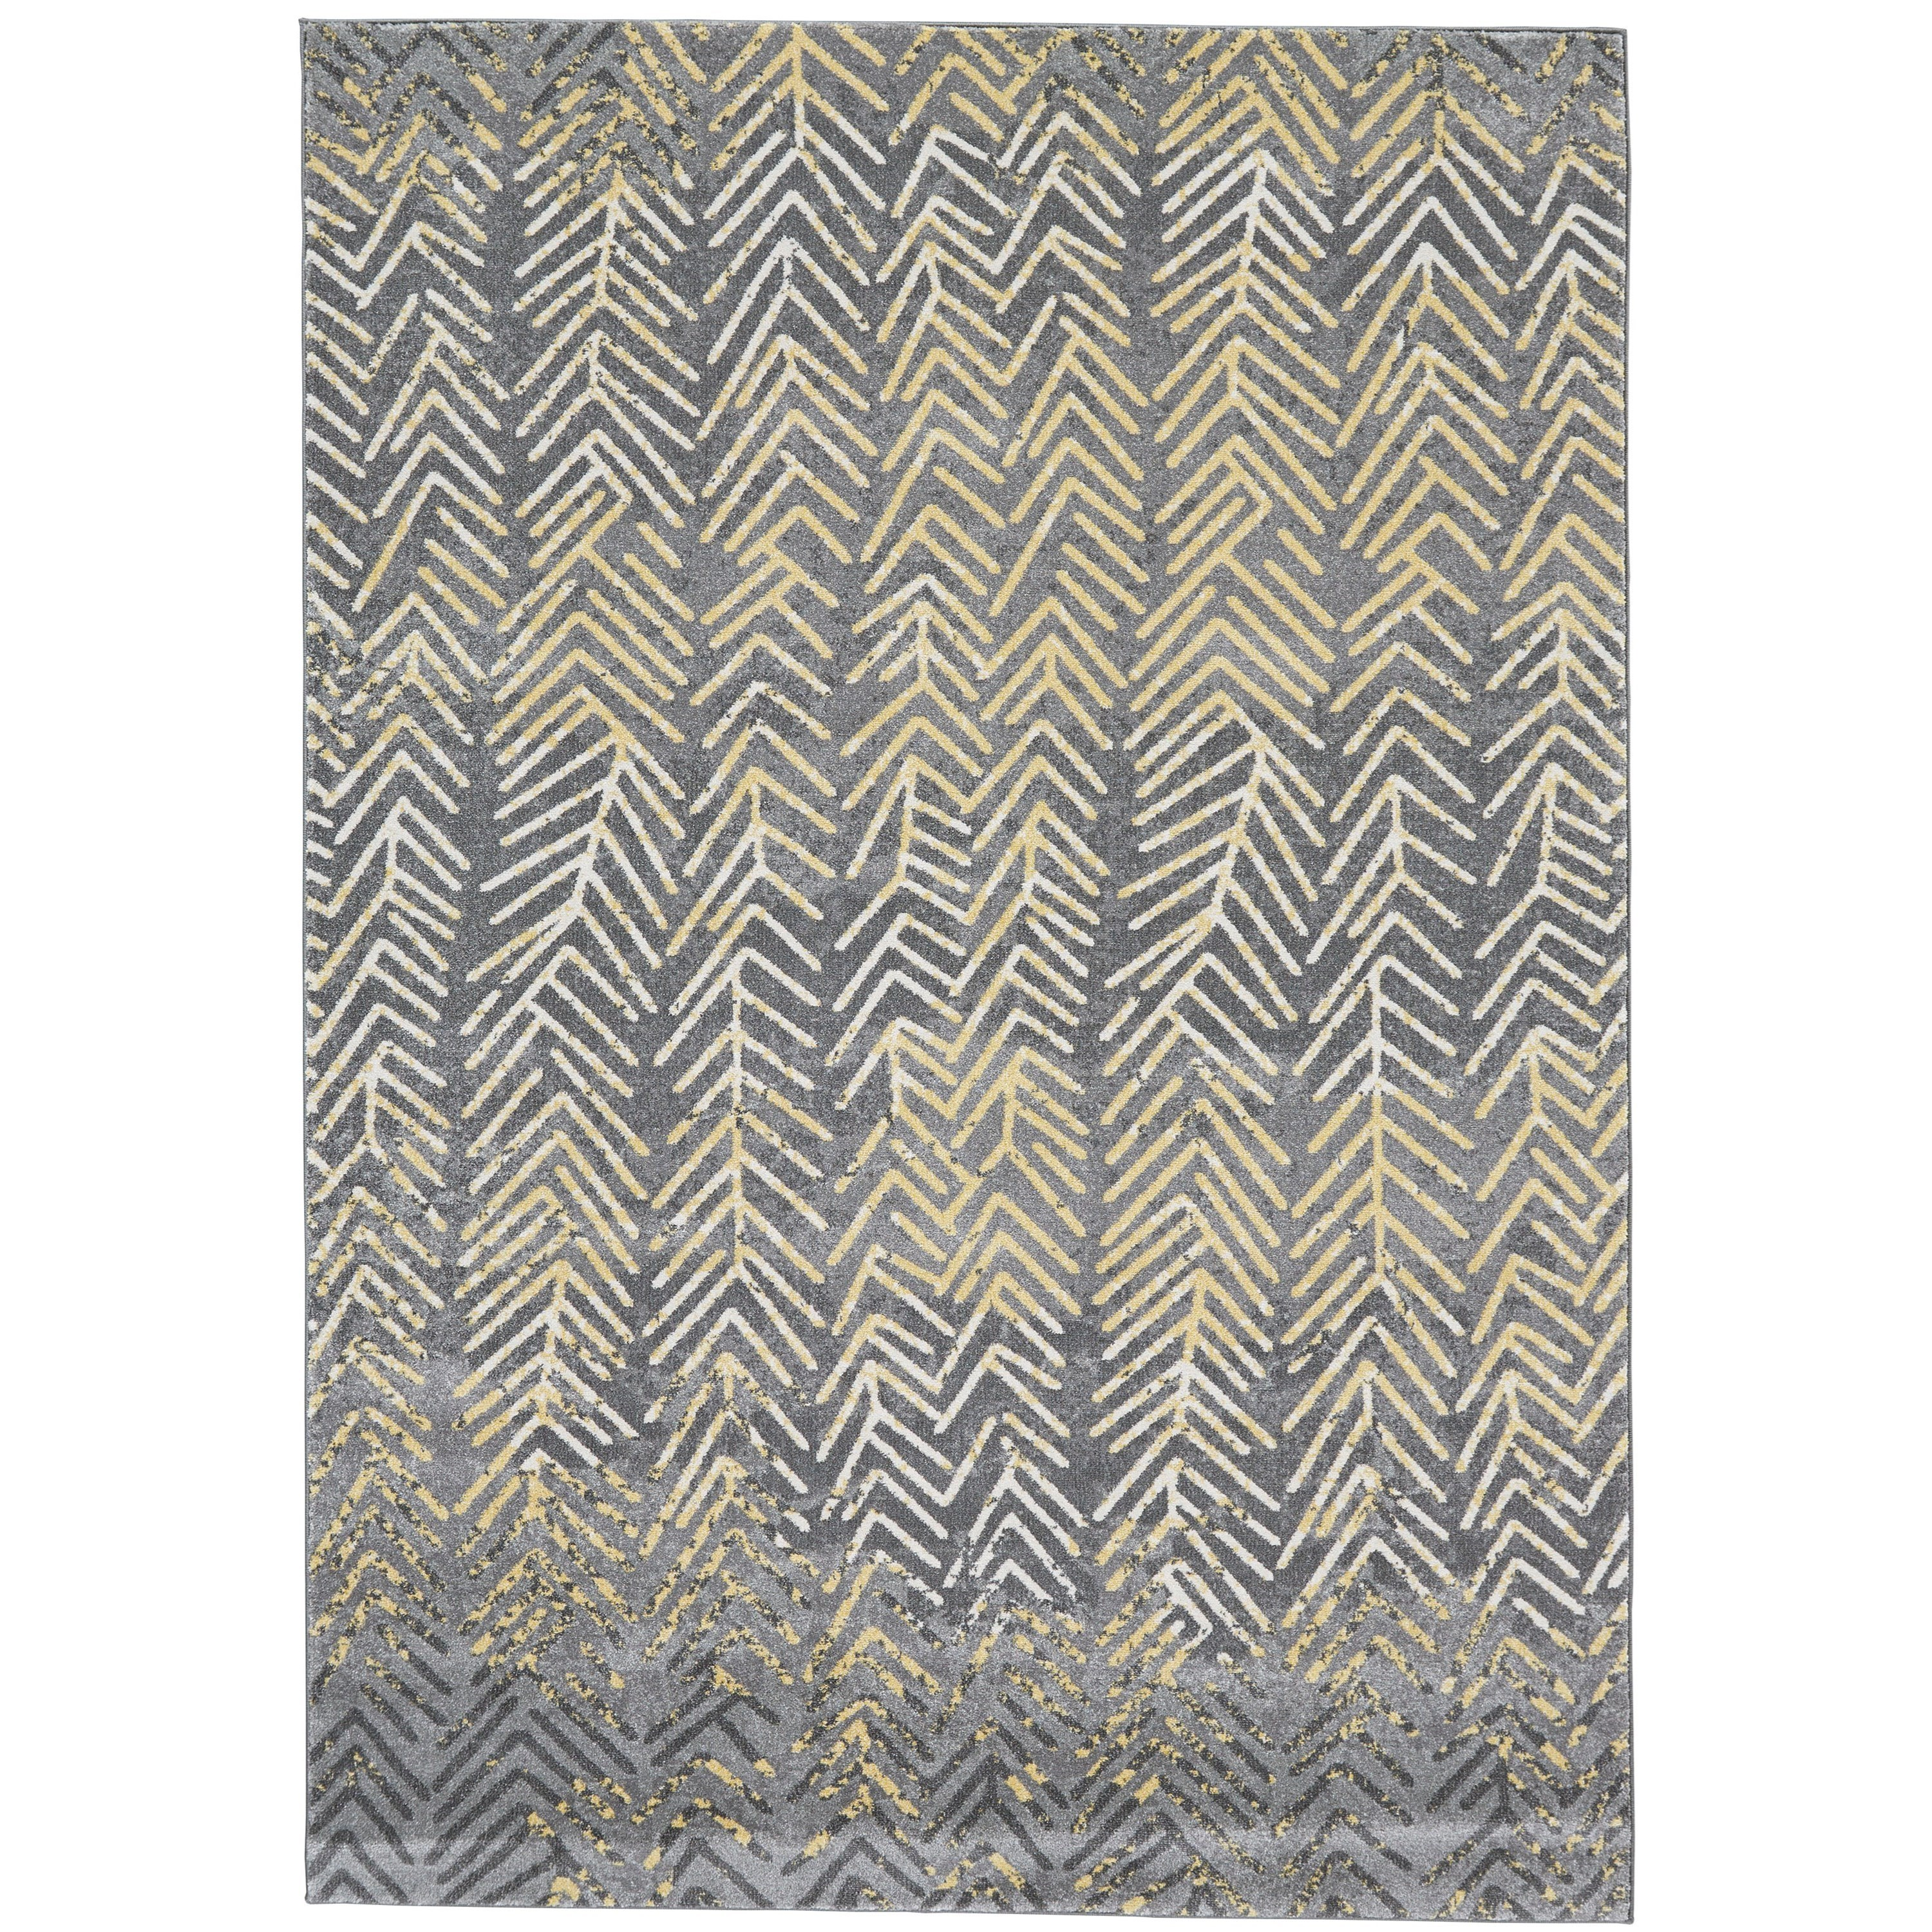 """Bleecker Granite 2'-2"""" x 4' Area Rug by Feizy Rugs at Sprintz Furniture"""